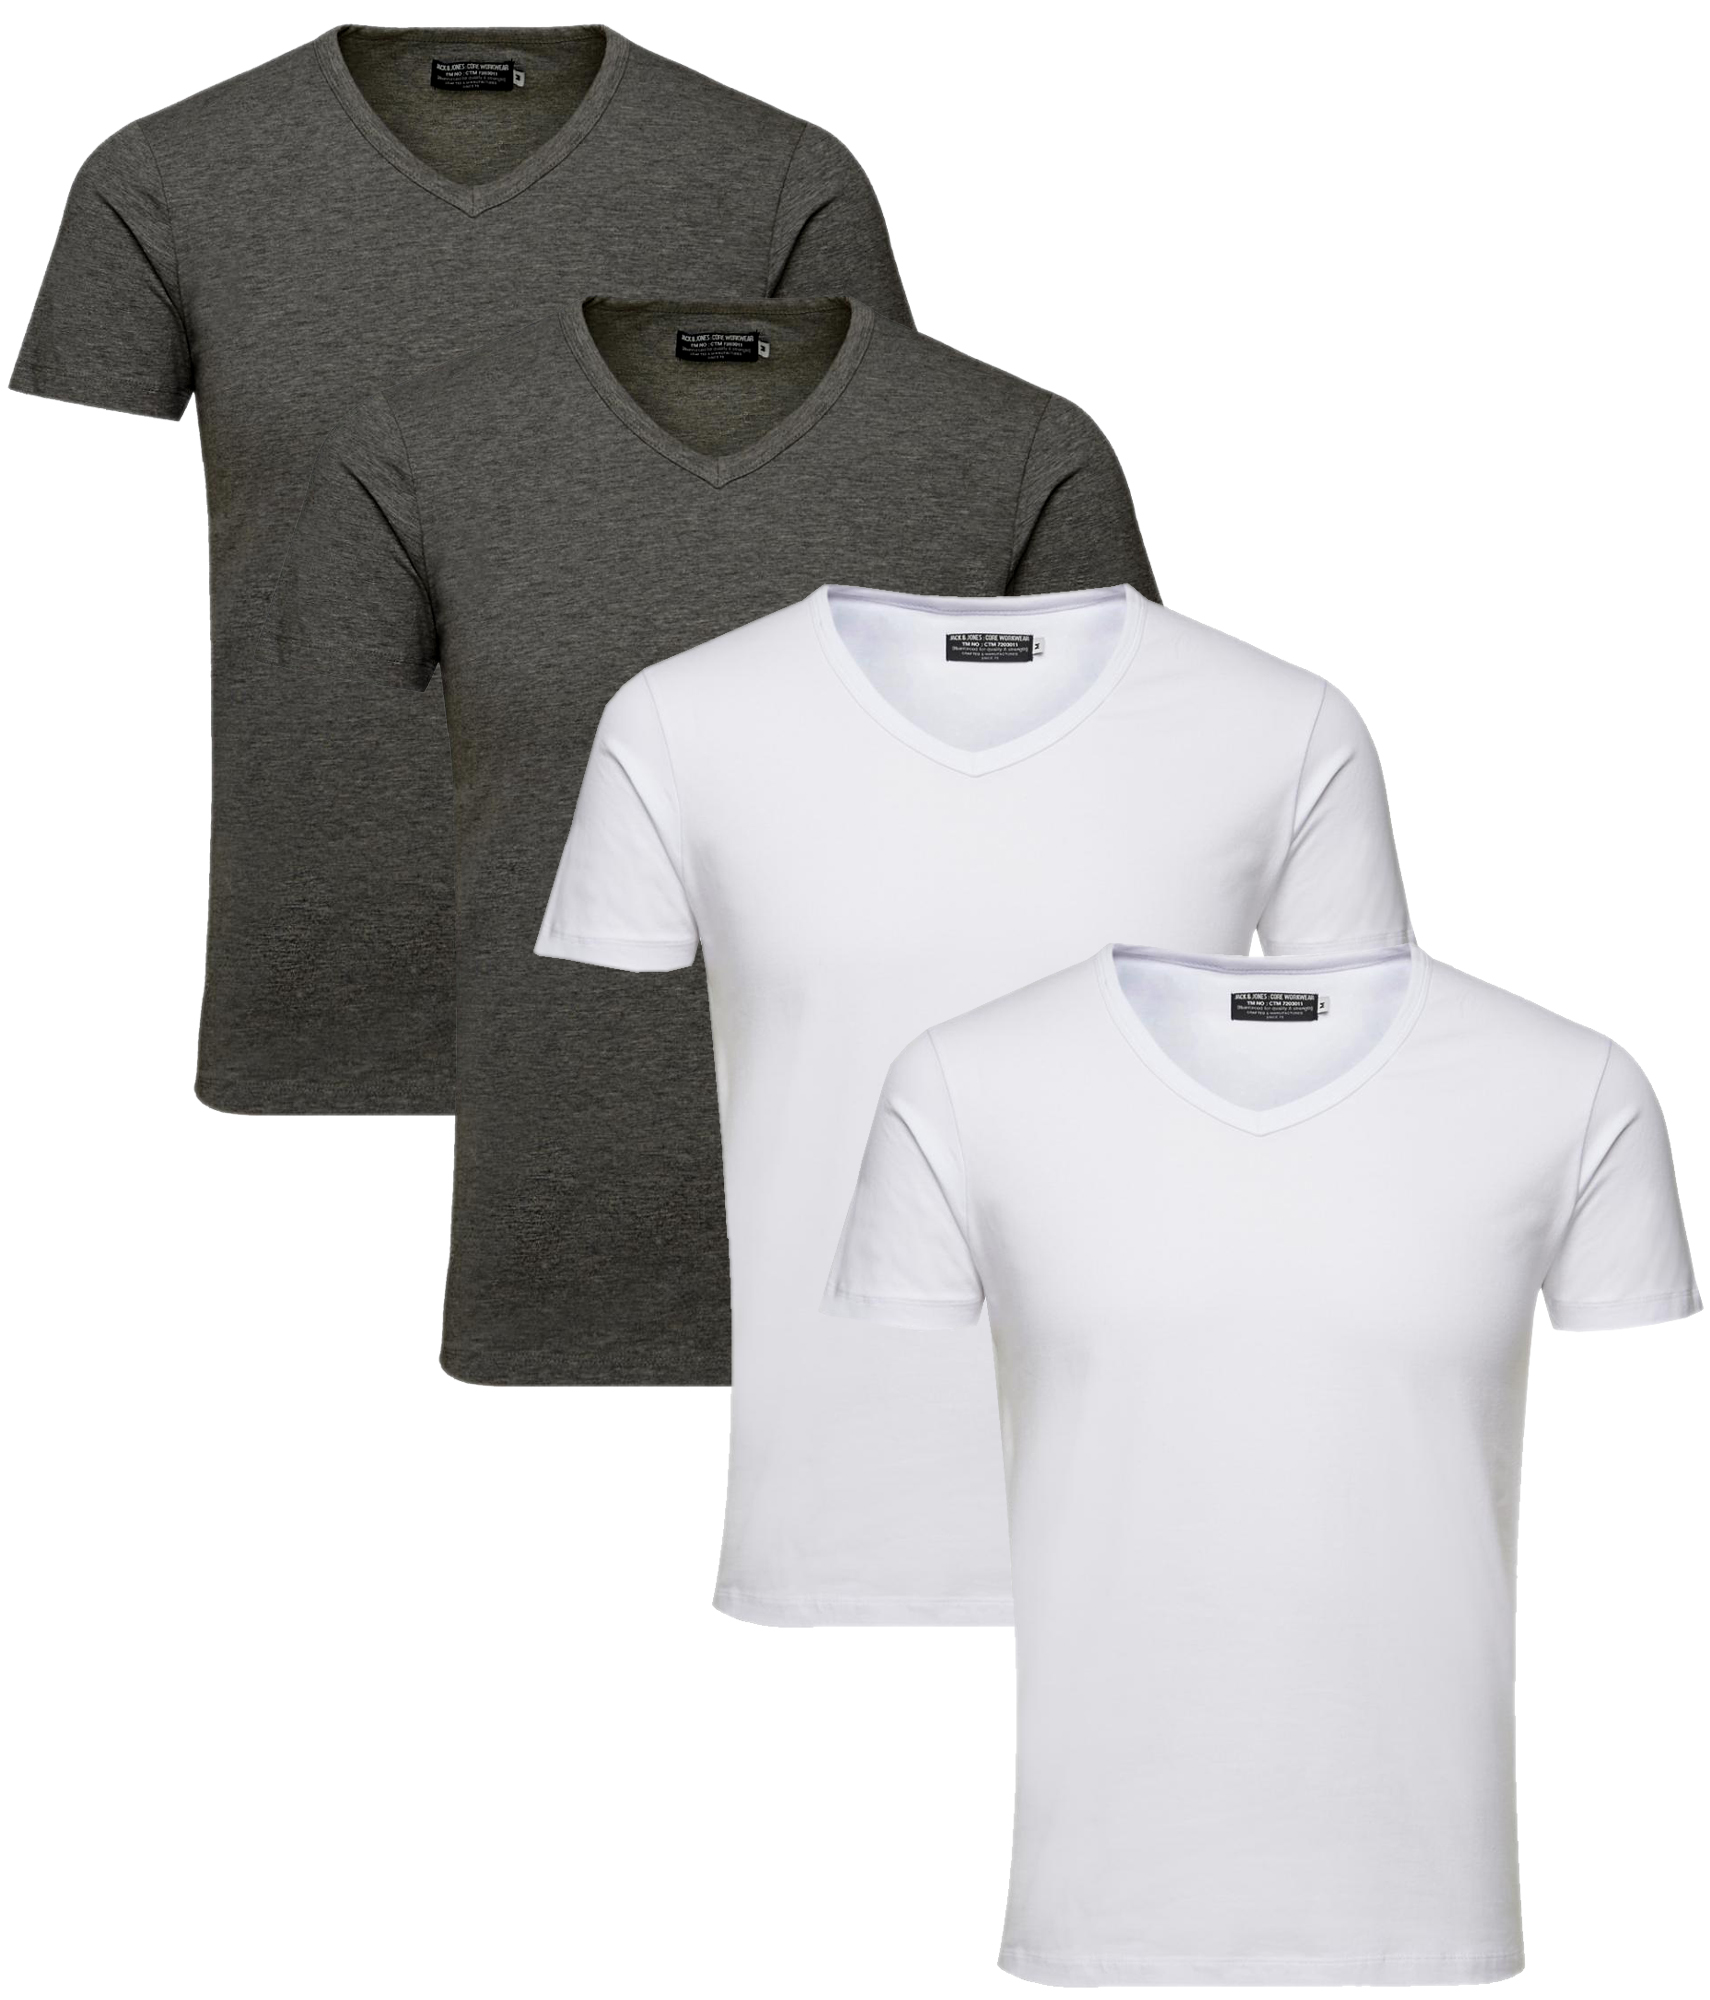 3025 JACK & JONES T-Shirt 4er Pack Herren Basic Shirt V-Neck